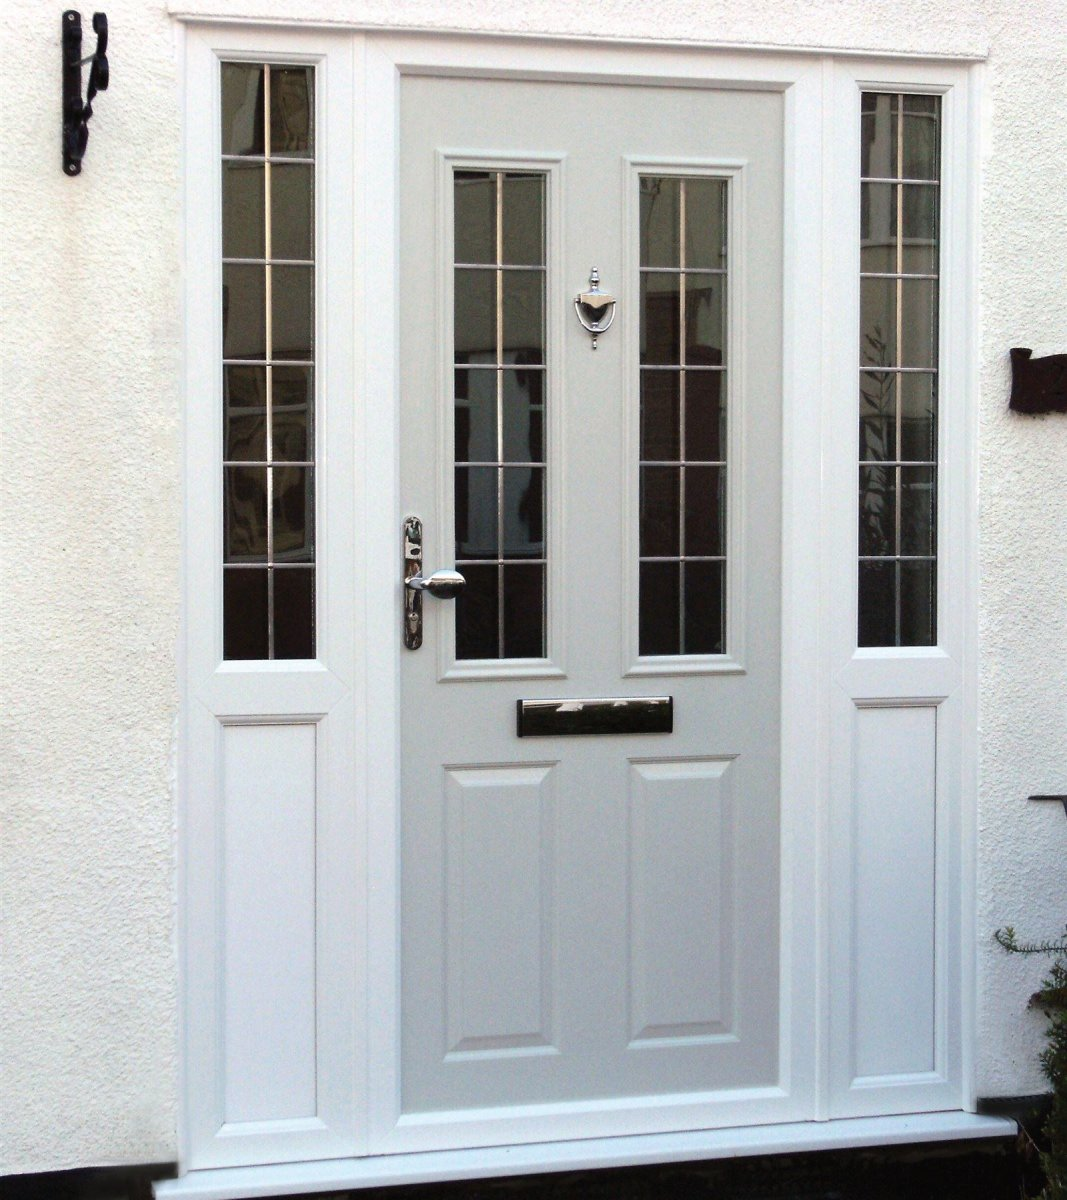 Custom colour composite door with side windows. Lead square glass. Westcliff-on-Sea, Essex.